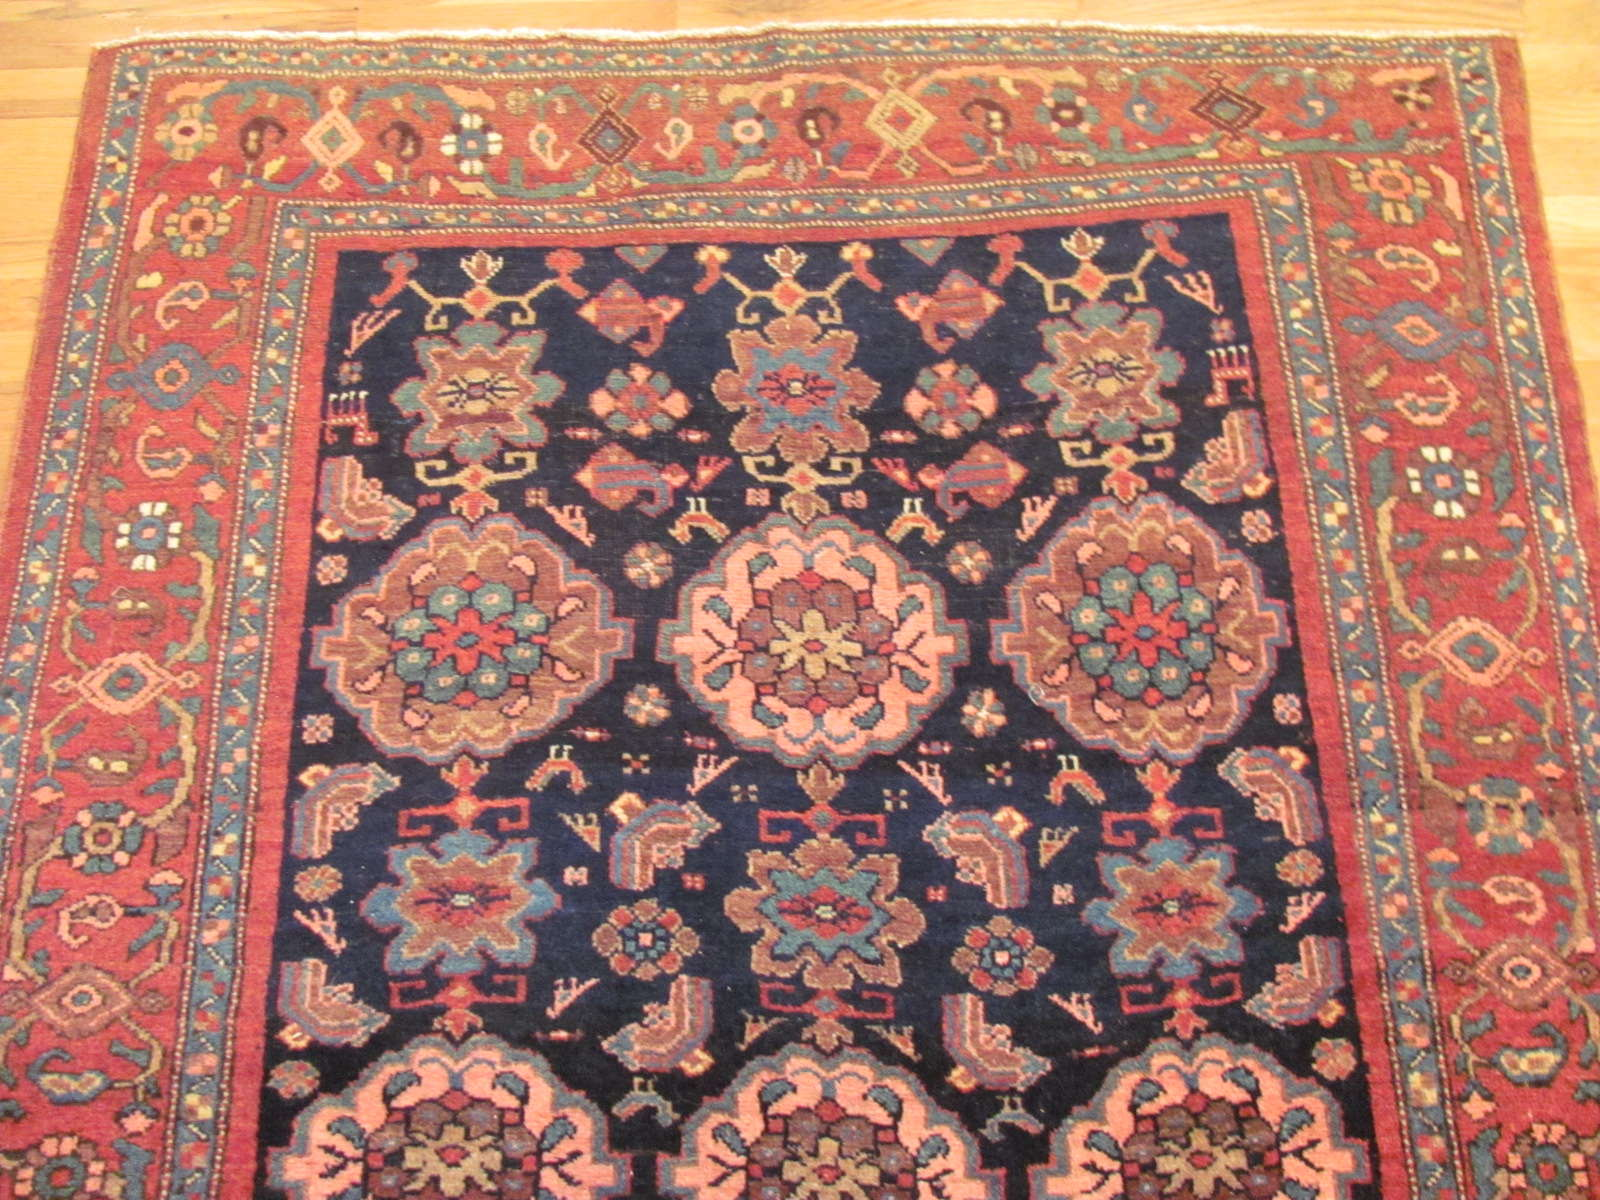 24611 antique bidjar persian rug 4,4 x 6,5 -1